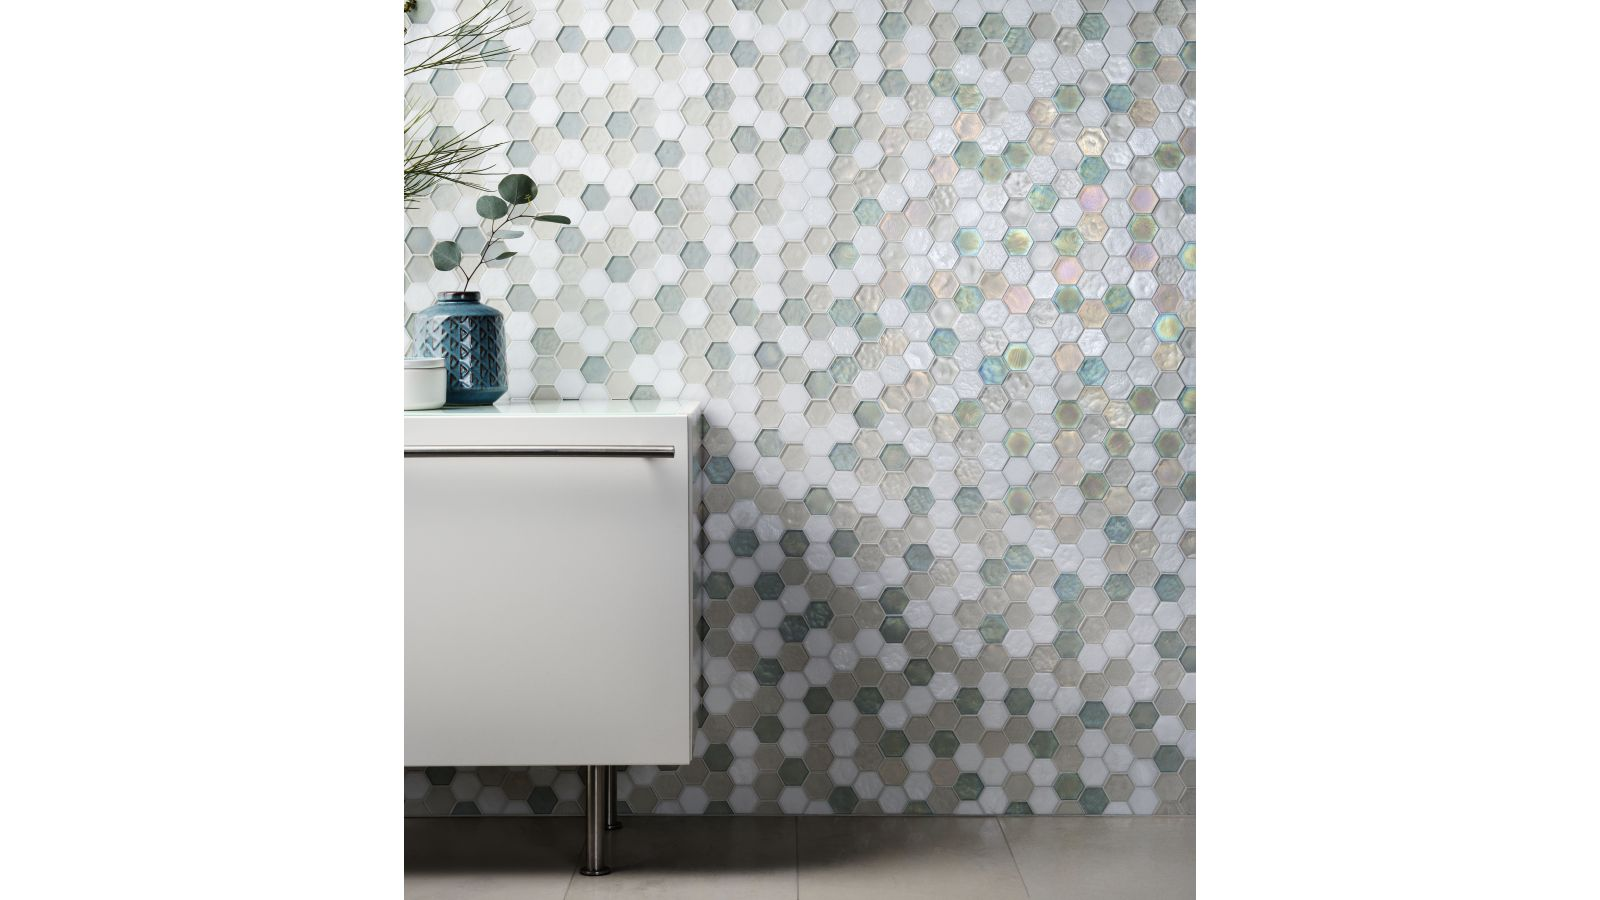 Oceanside Glasstile - New Pattern Muse Collection - Hexagon